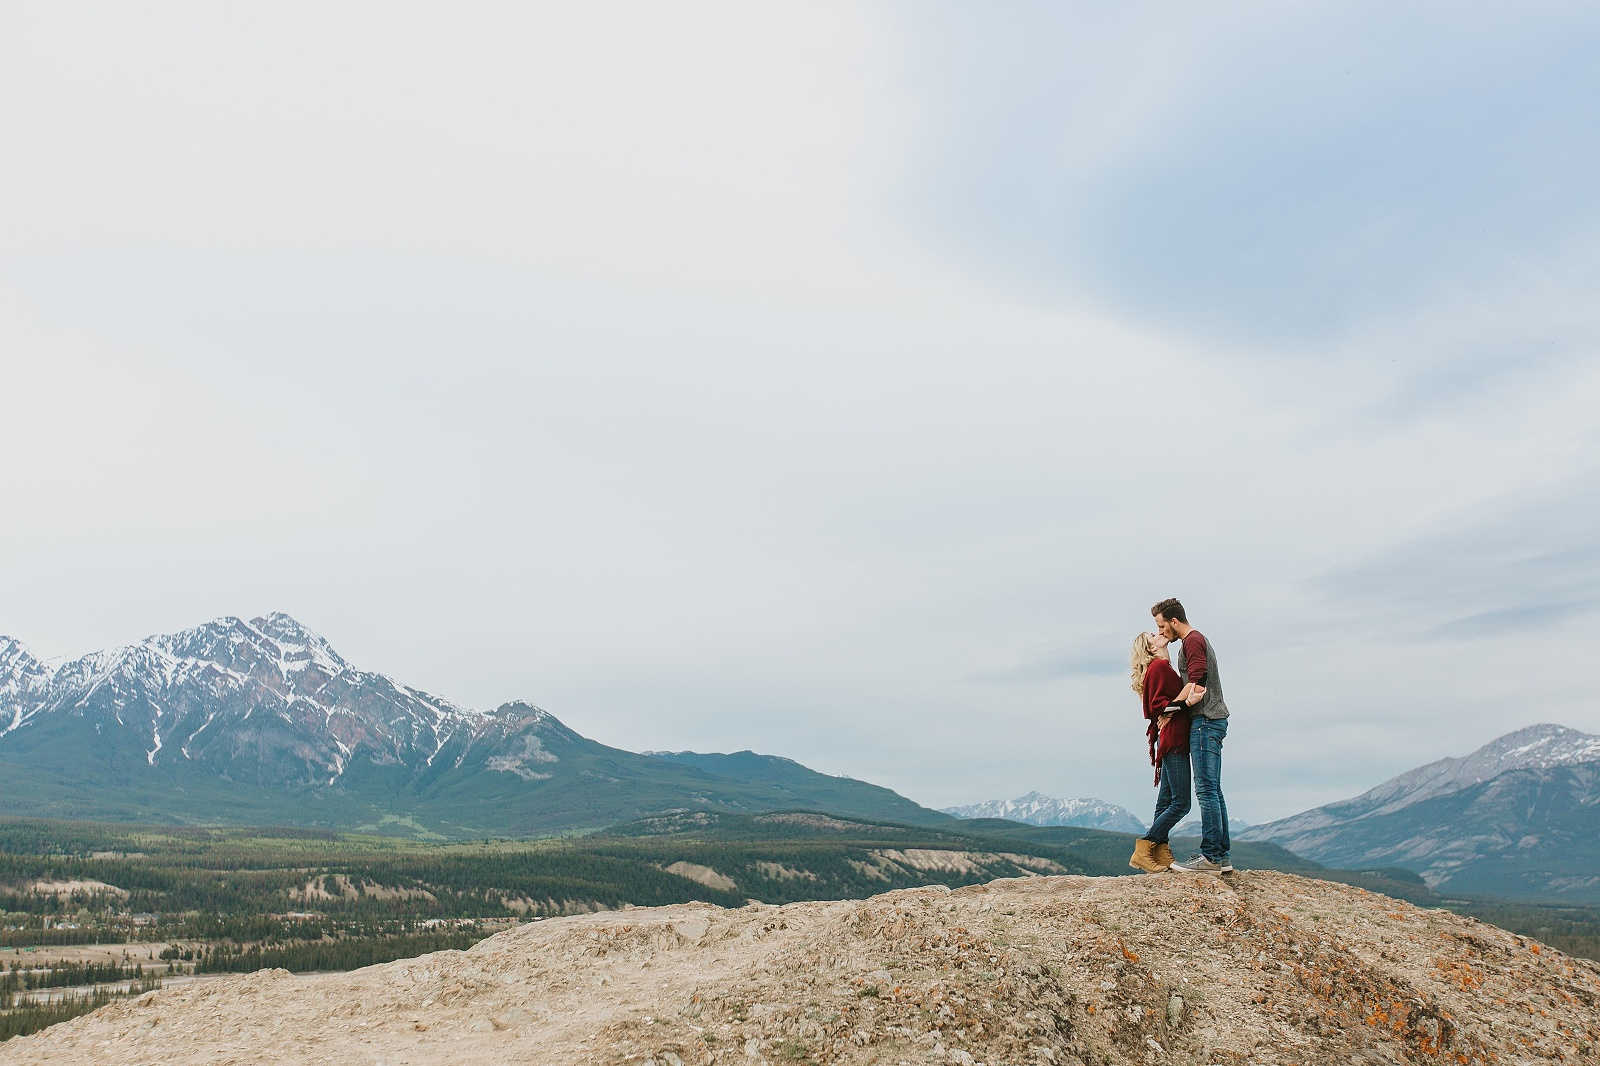 Caity-and-Mac-Mountain-Top-Engagement-Session-at-Jasper-National-Park-Old-Fort-Point-by-Emilie-Smith-Adventure-Photography